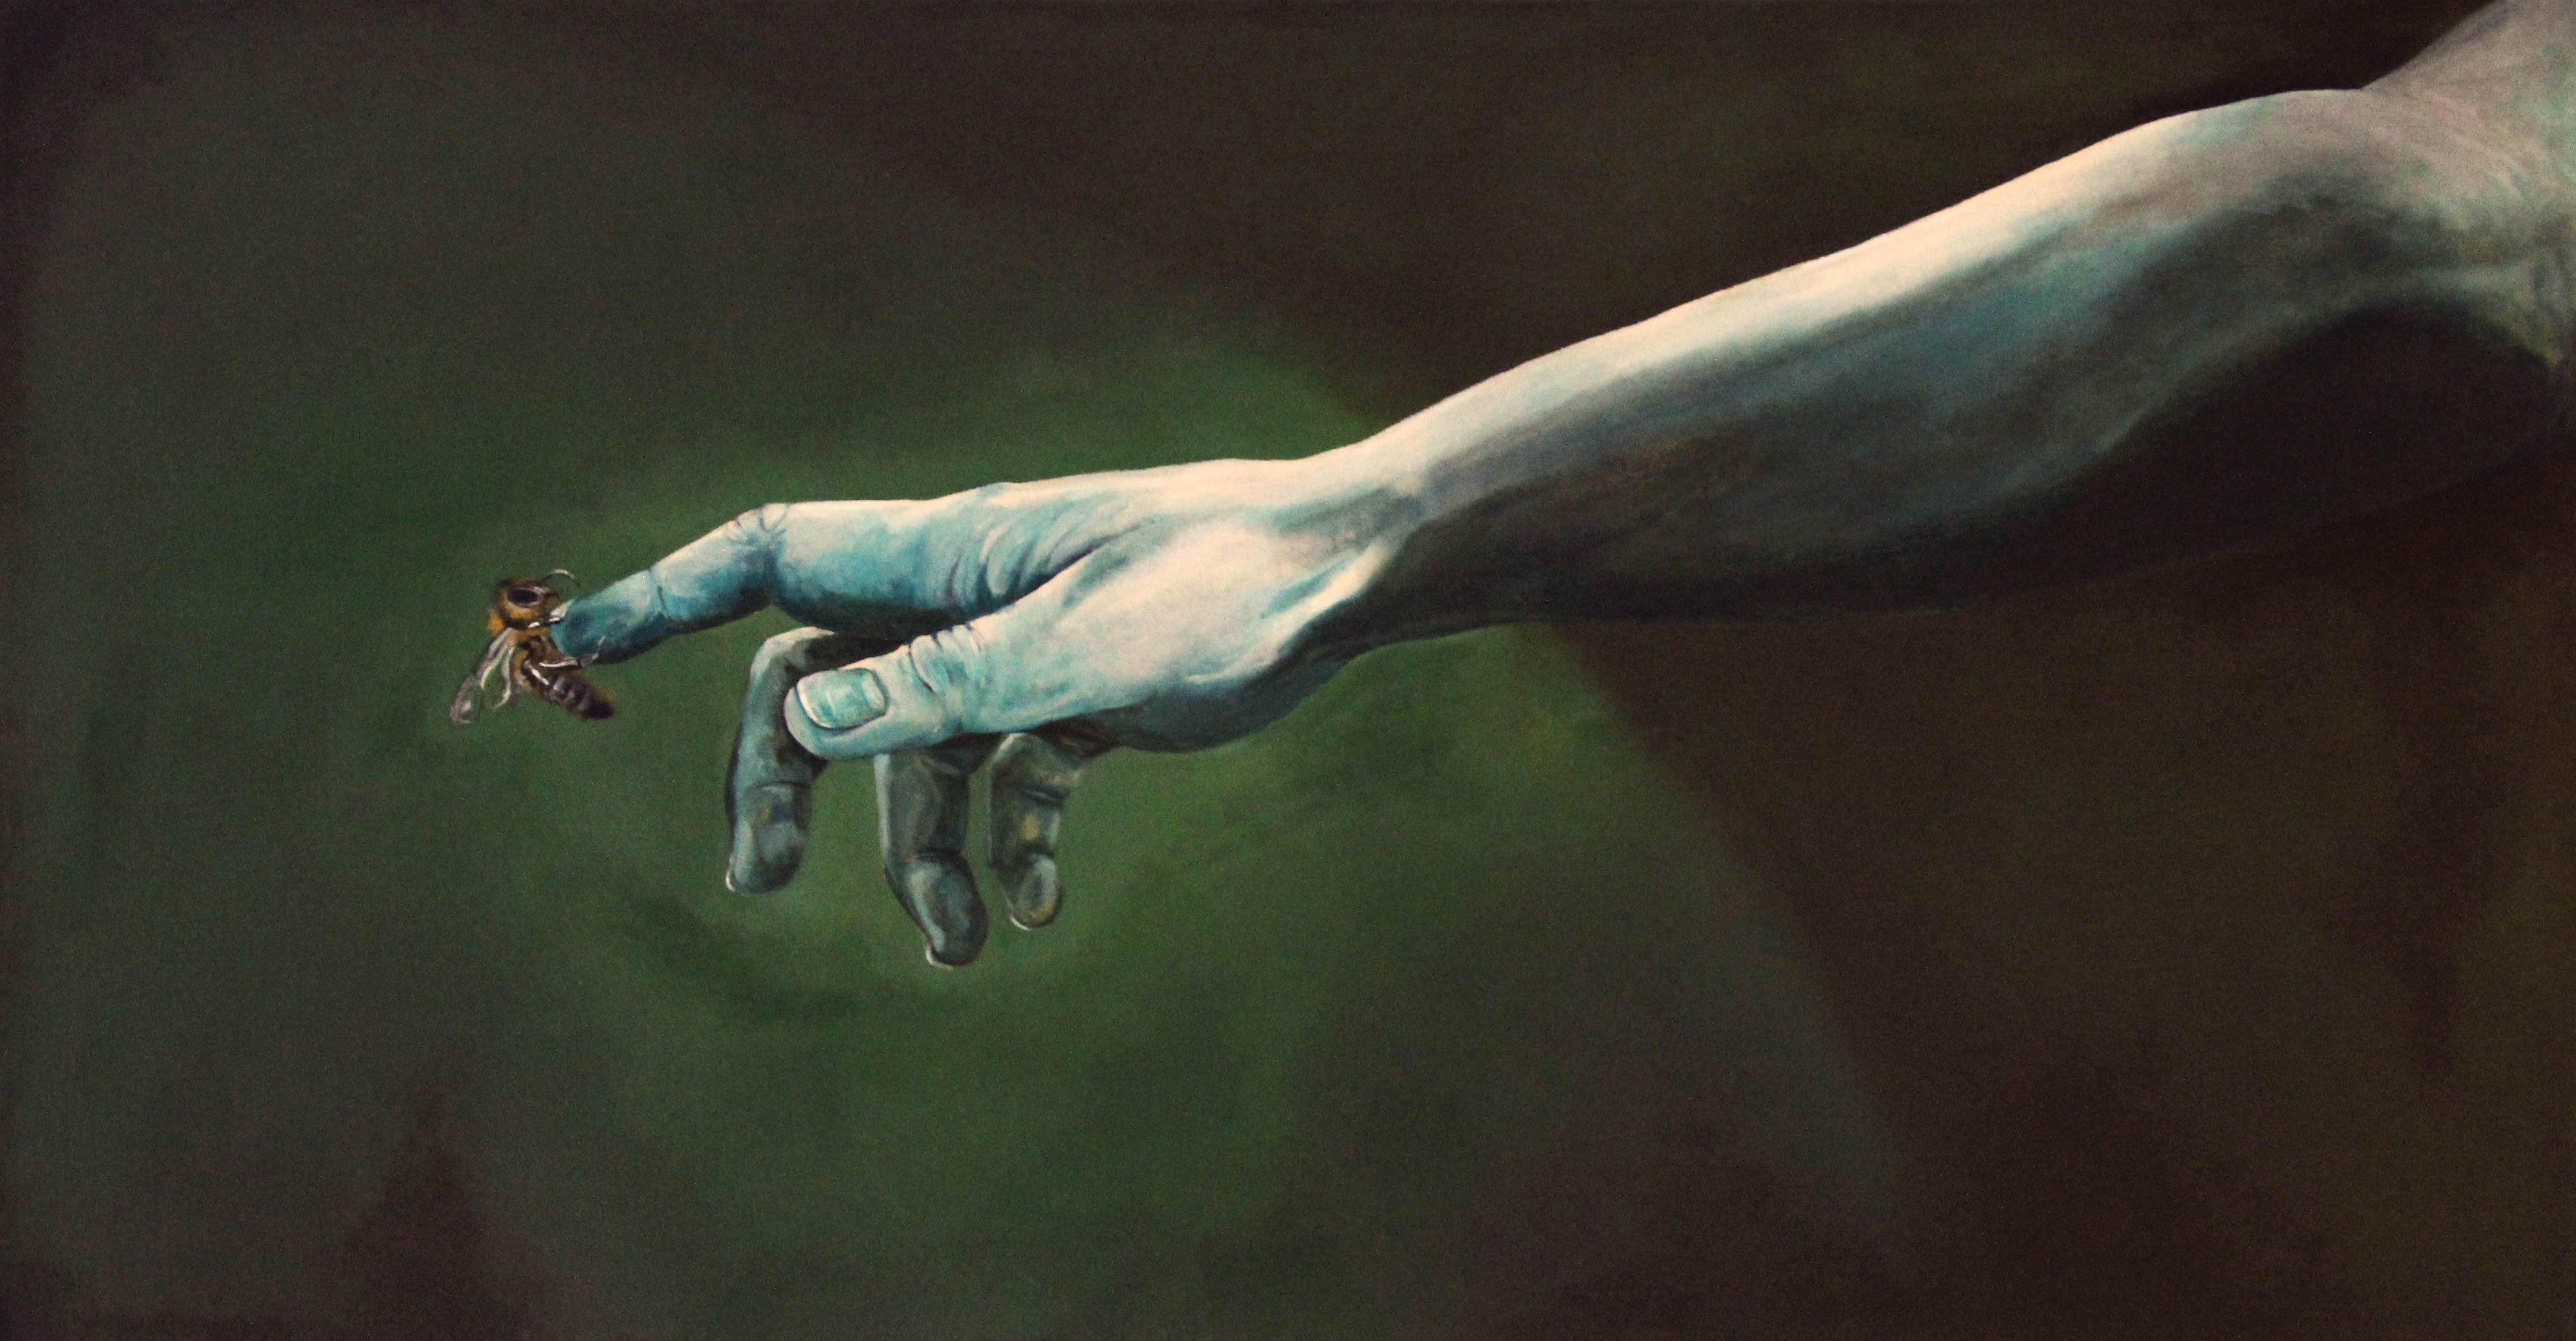 Painting of an outstretched hand with a bee on the person's finger